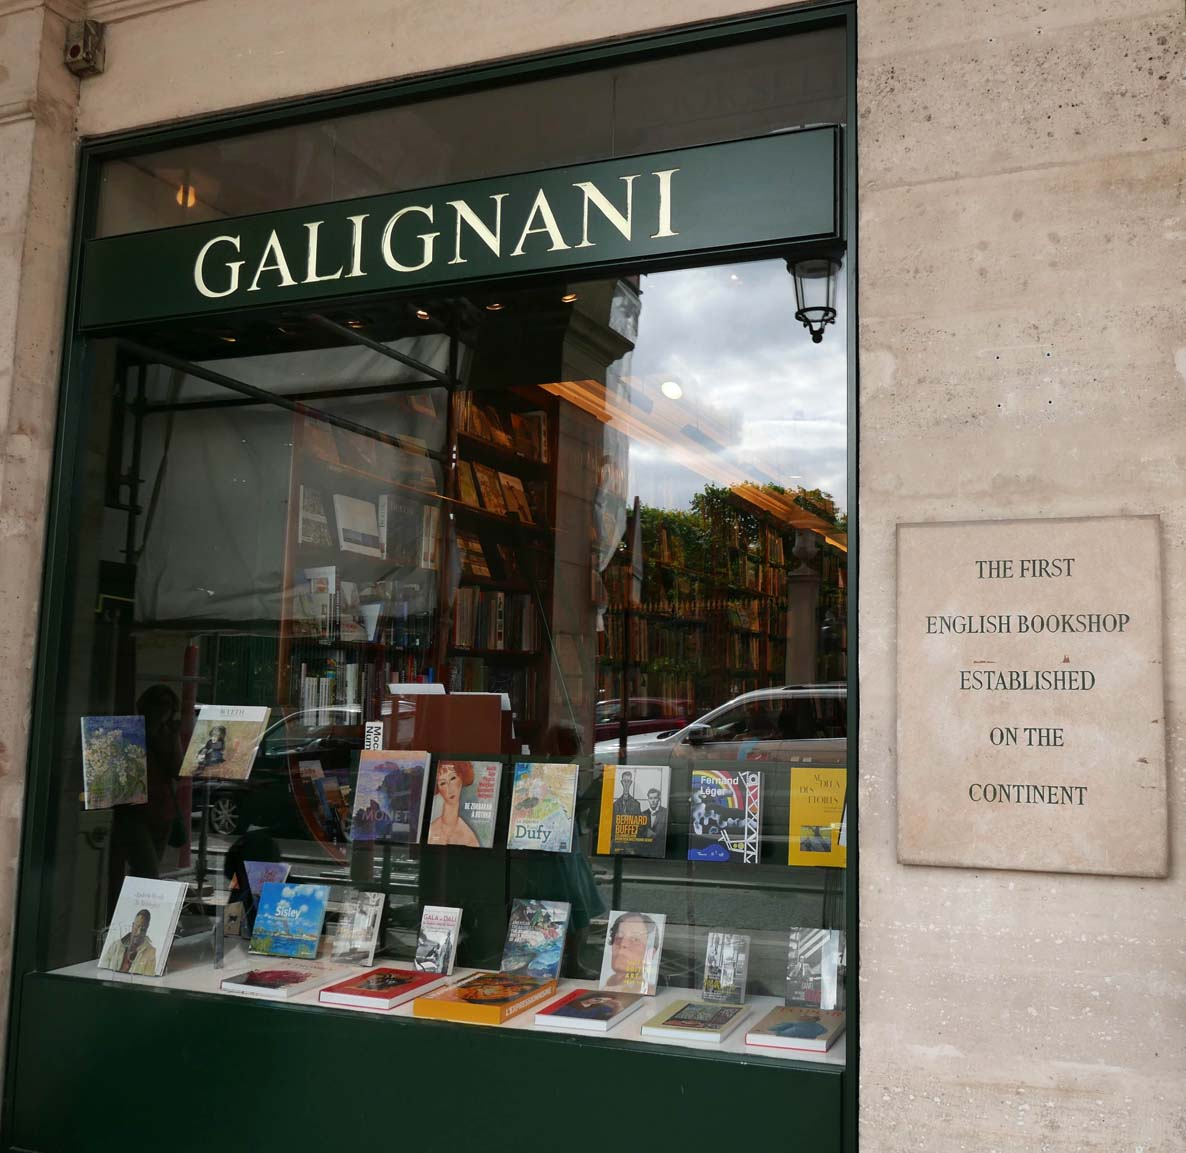 Galignani Bookstore, also visited by the Joneses in 1844